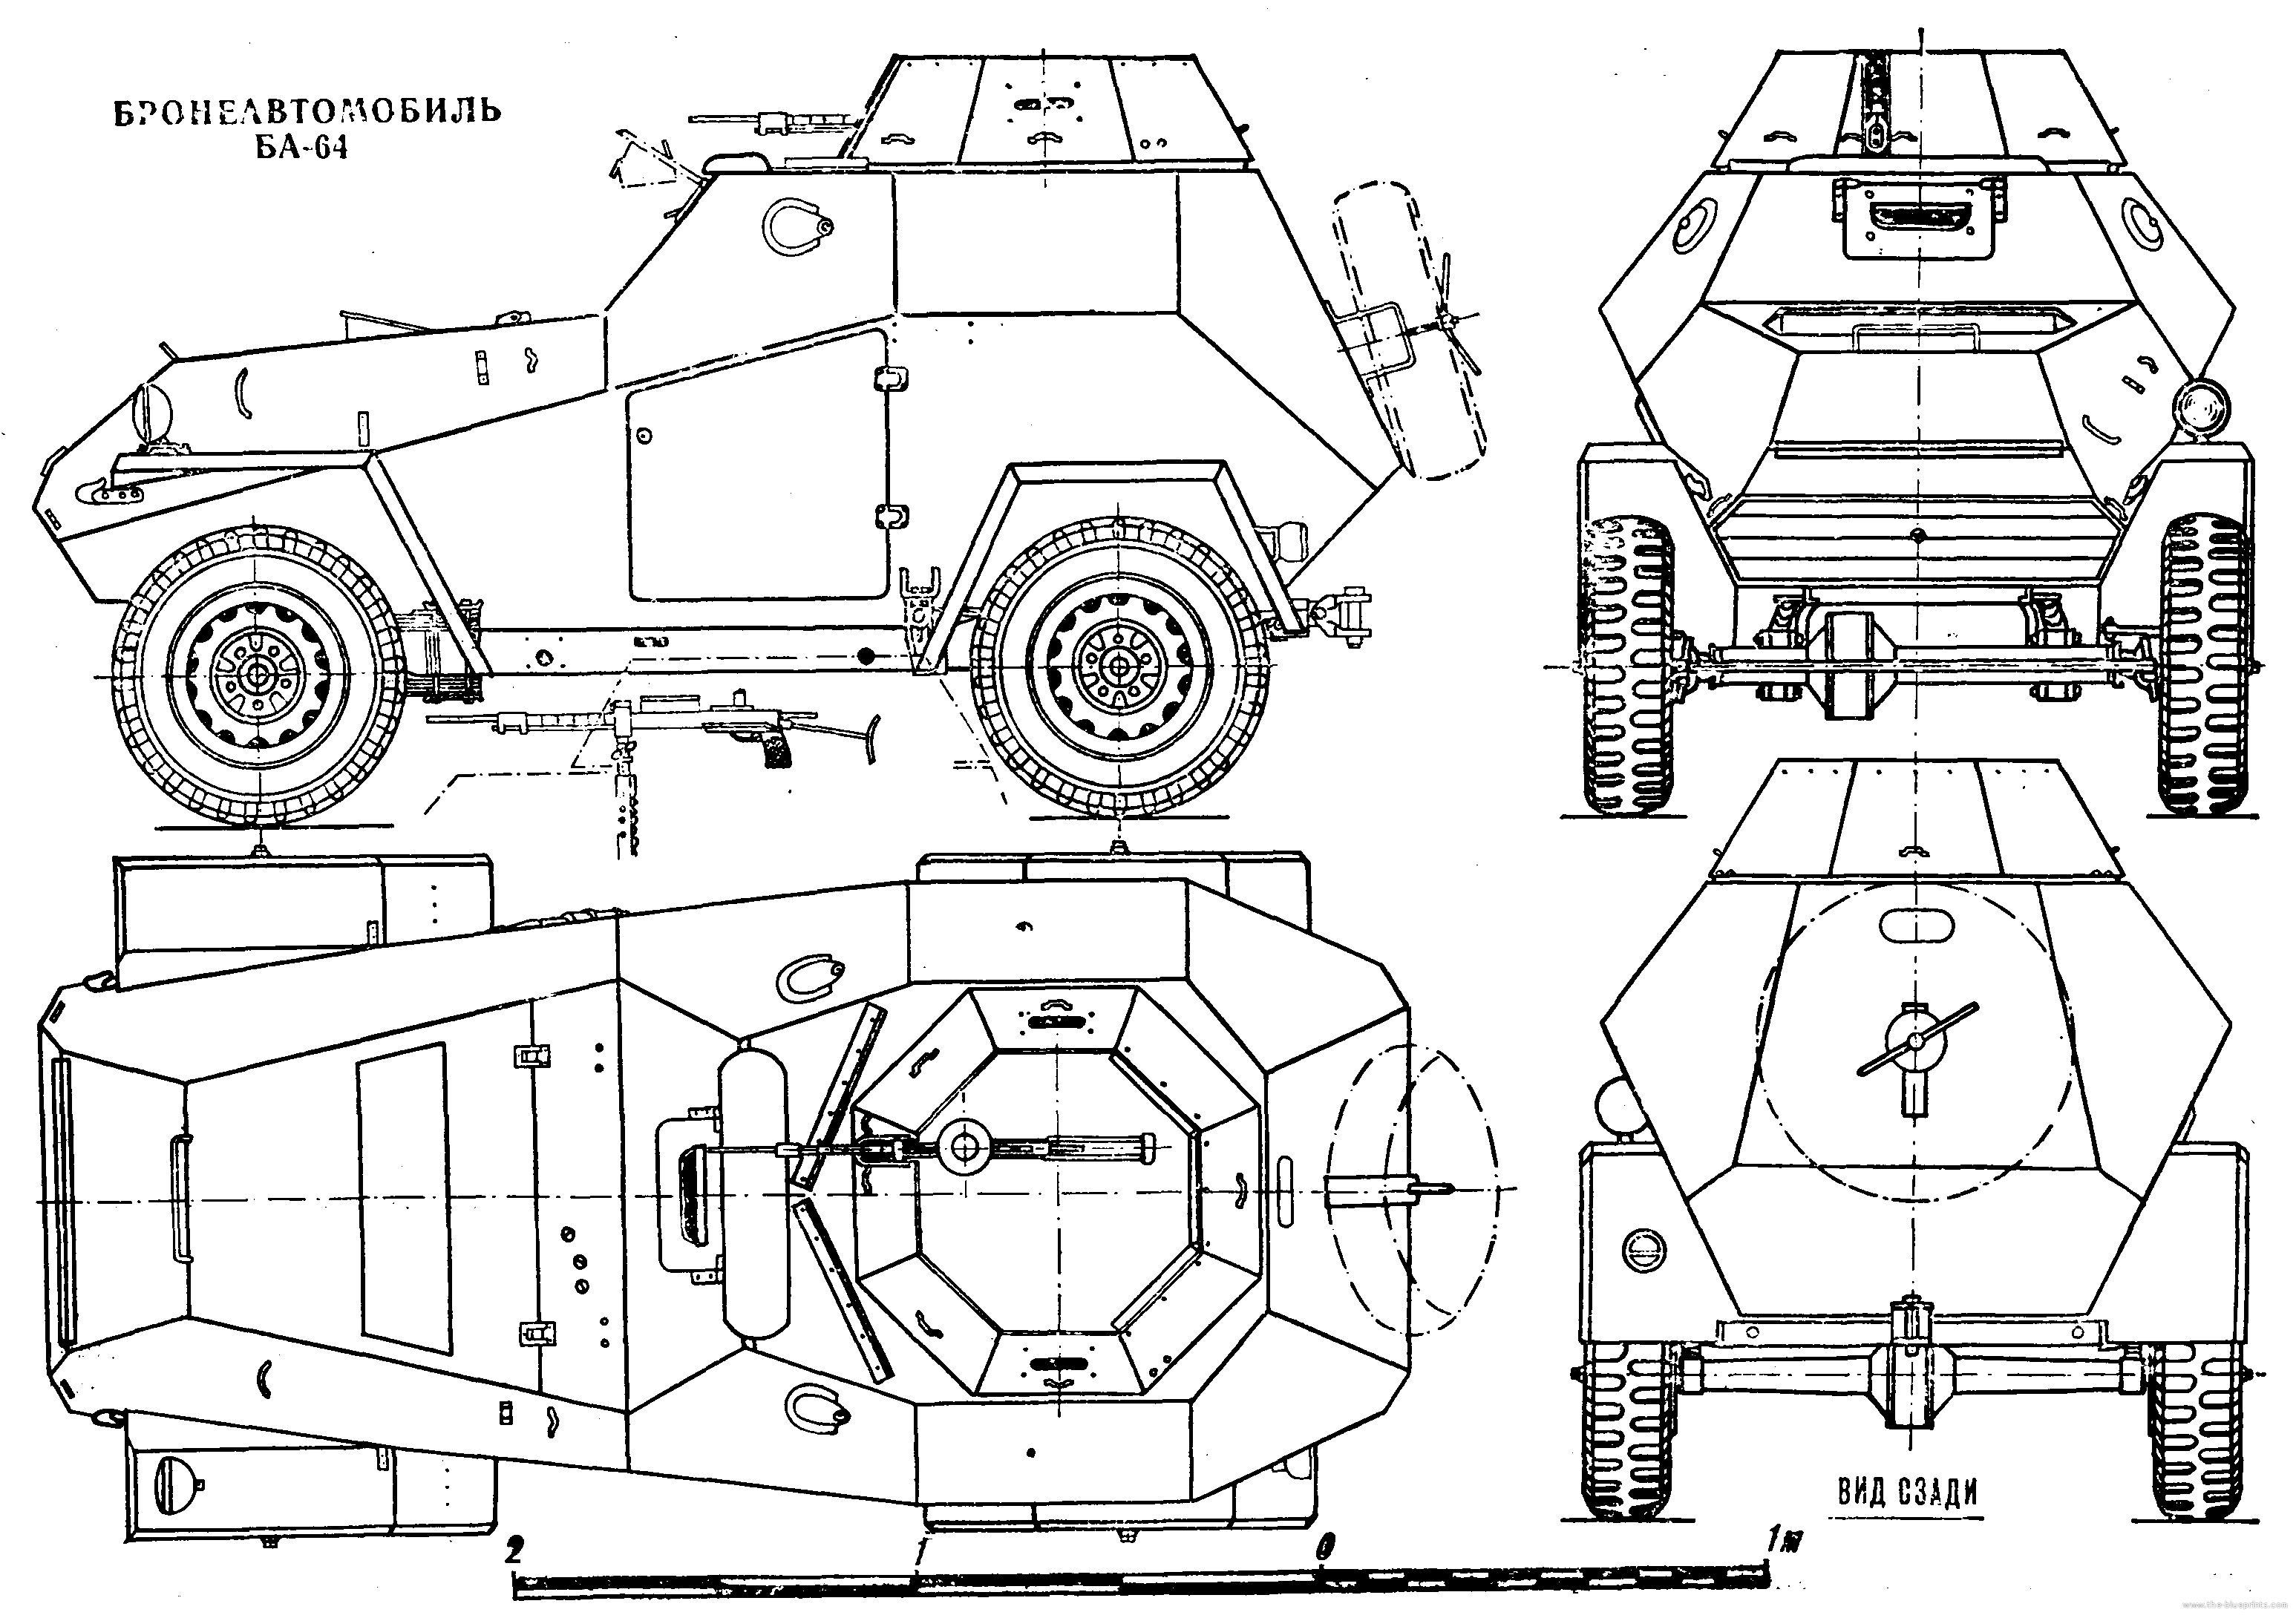 Blueprints \u003e Tanks \u003e Russian Tanks \u003e Ba 64 Mod 43 Wiring  GFCI Outlets In Series Cj Wiring Diagram 1952